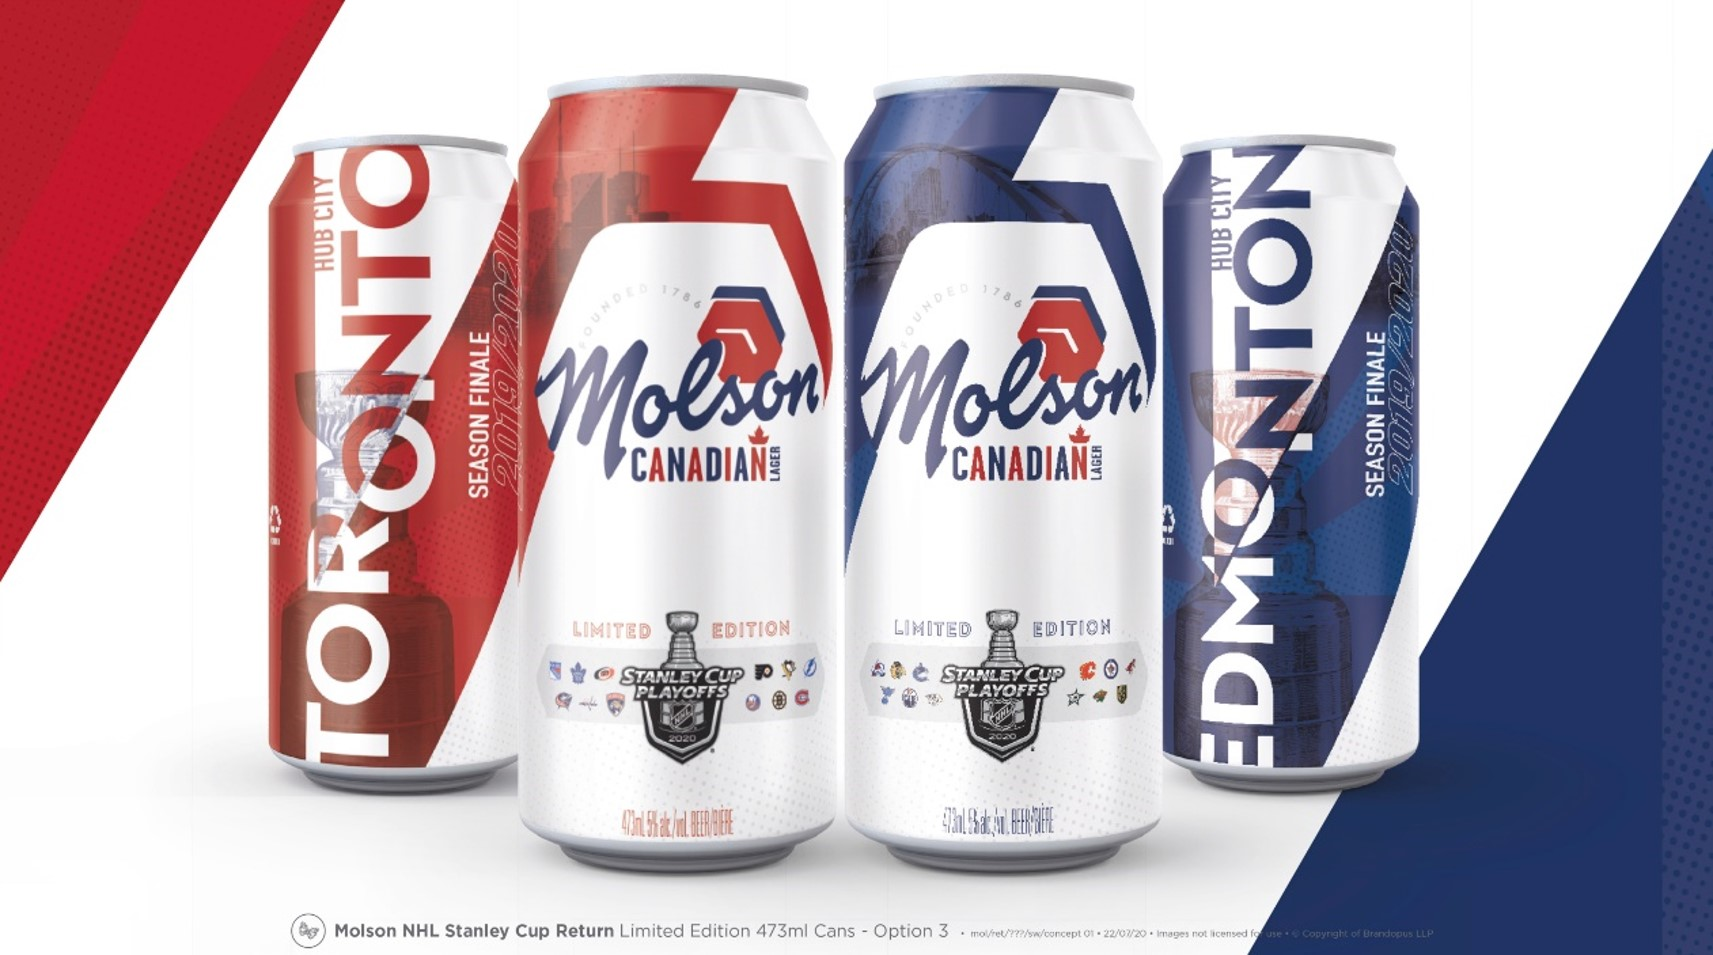 Commemorative cans